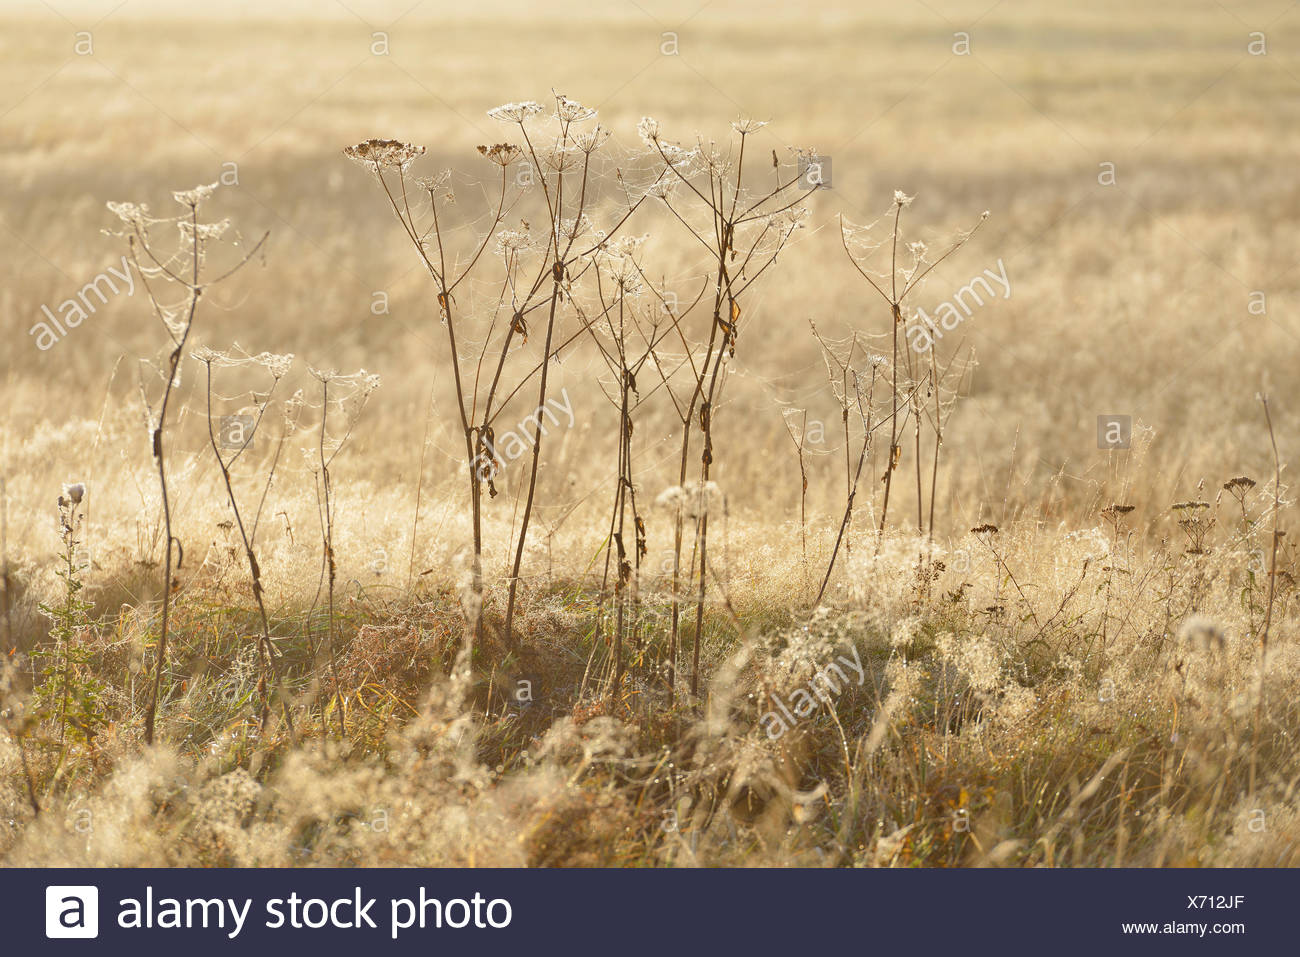 Old perennials in a meadow covered with spider webs and dewdrops, Stiege, Oberharz am Brocken, Saxony-Anhalt, Germany - Stock Image